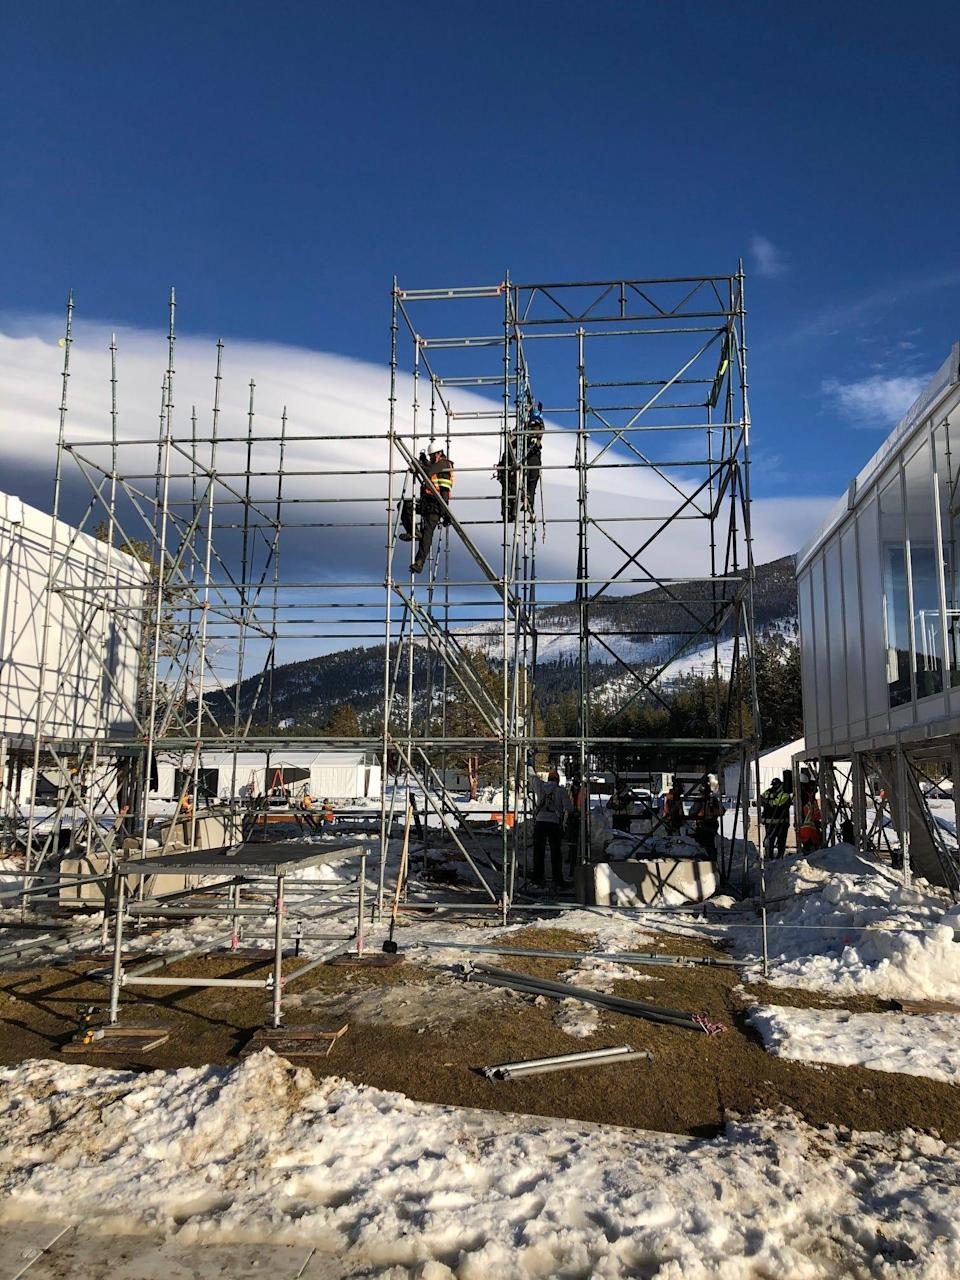 Construction on the facilities that will be used for the NHL games on the Edgewood Tahoe Resort.